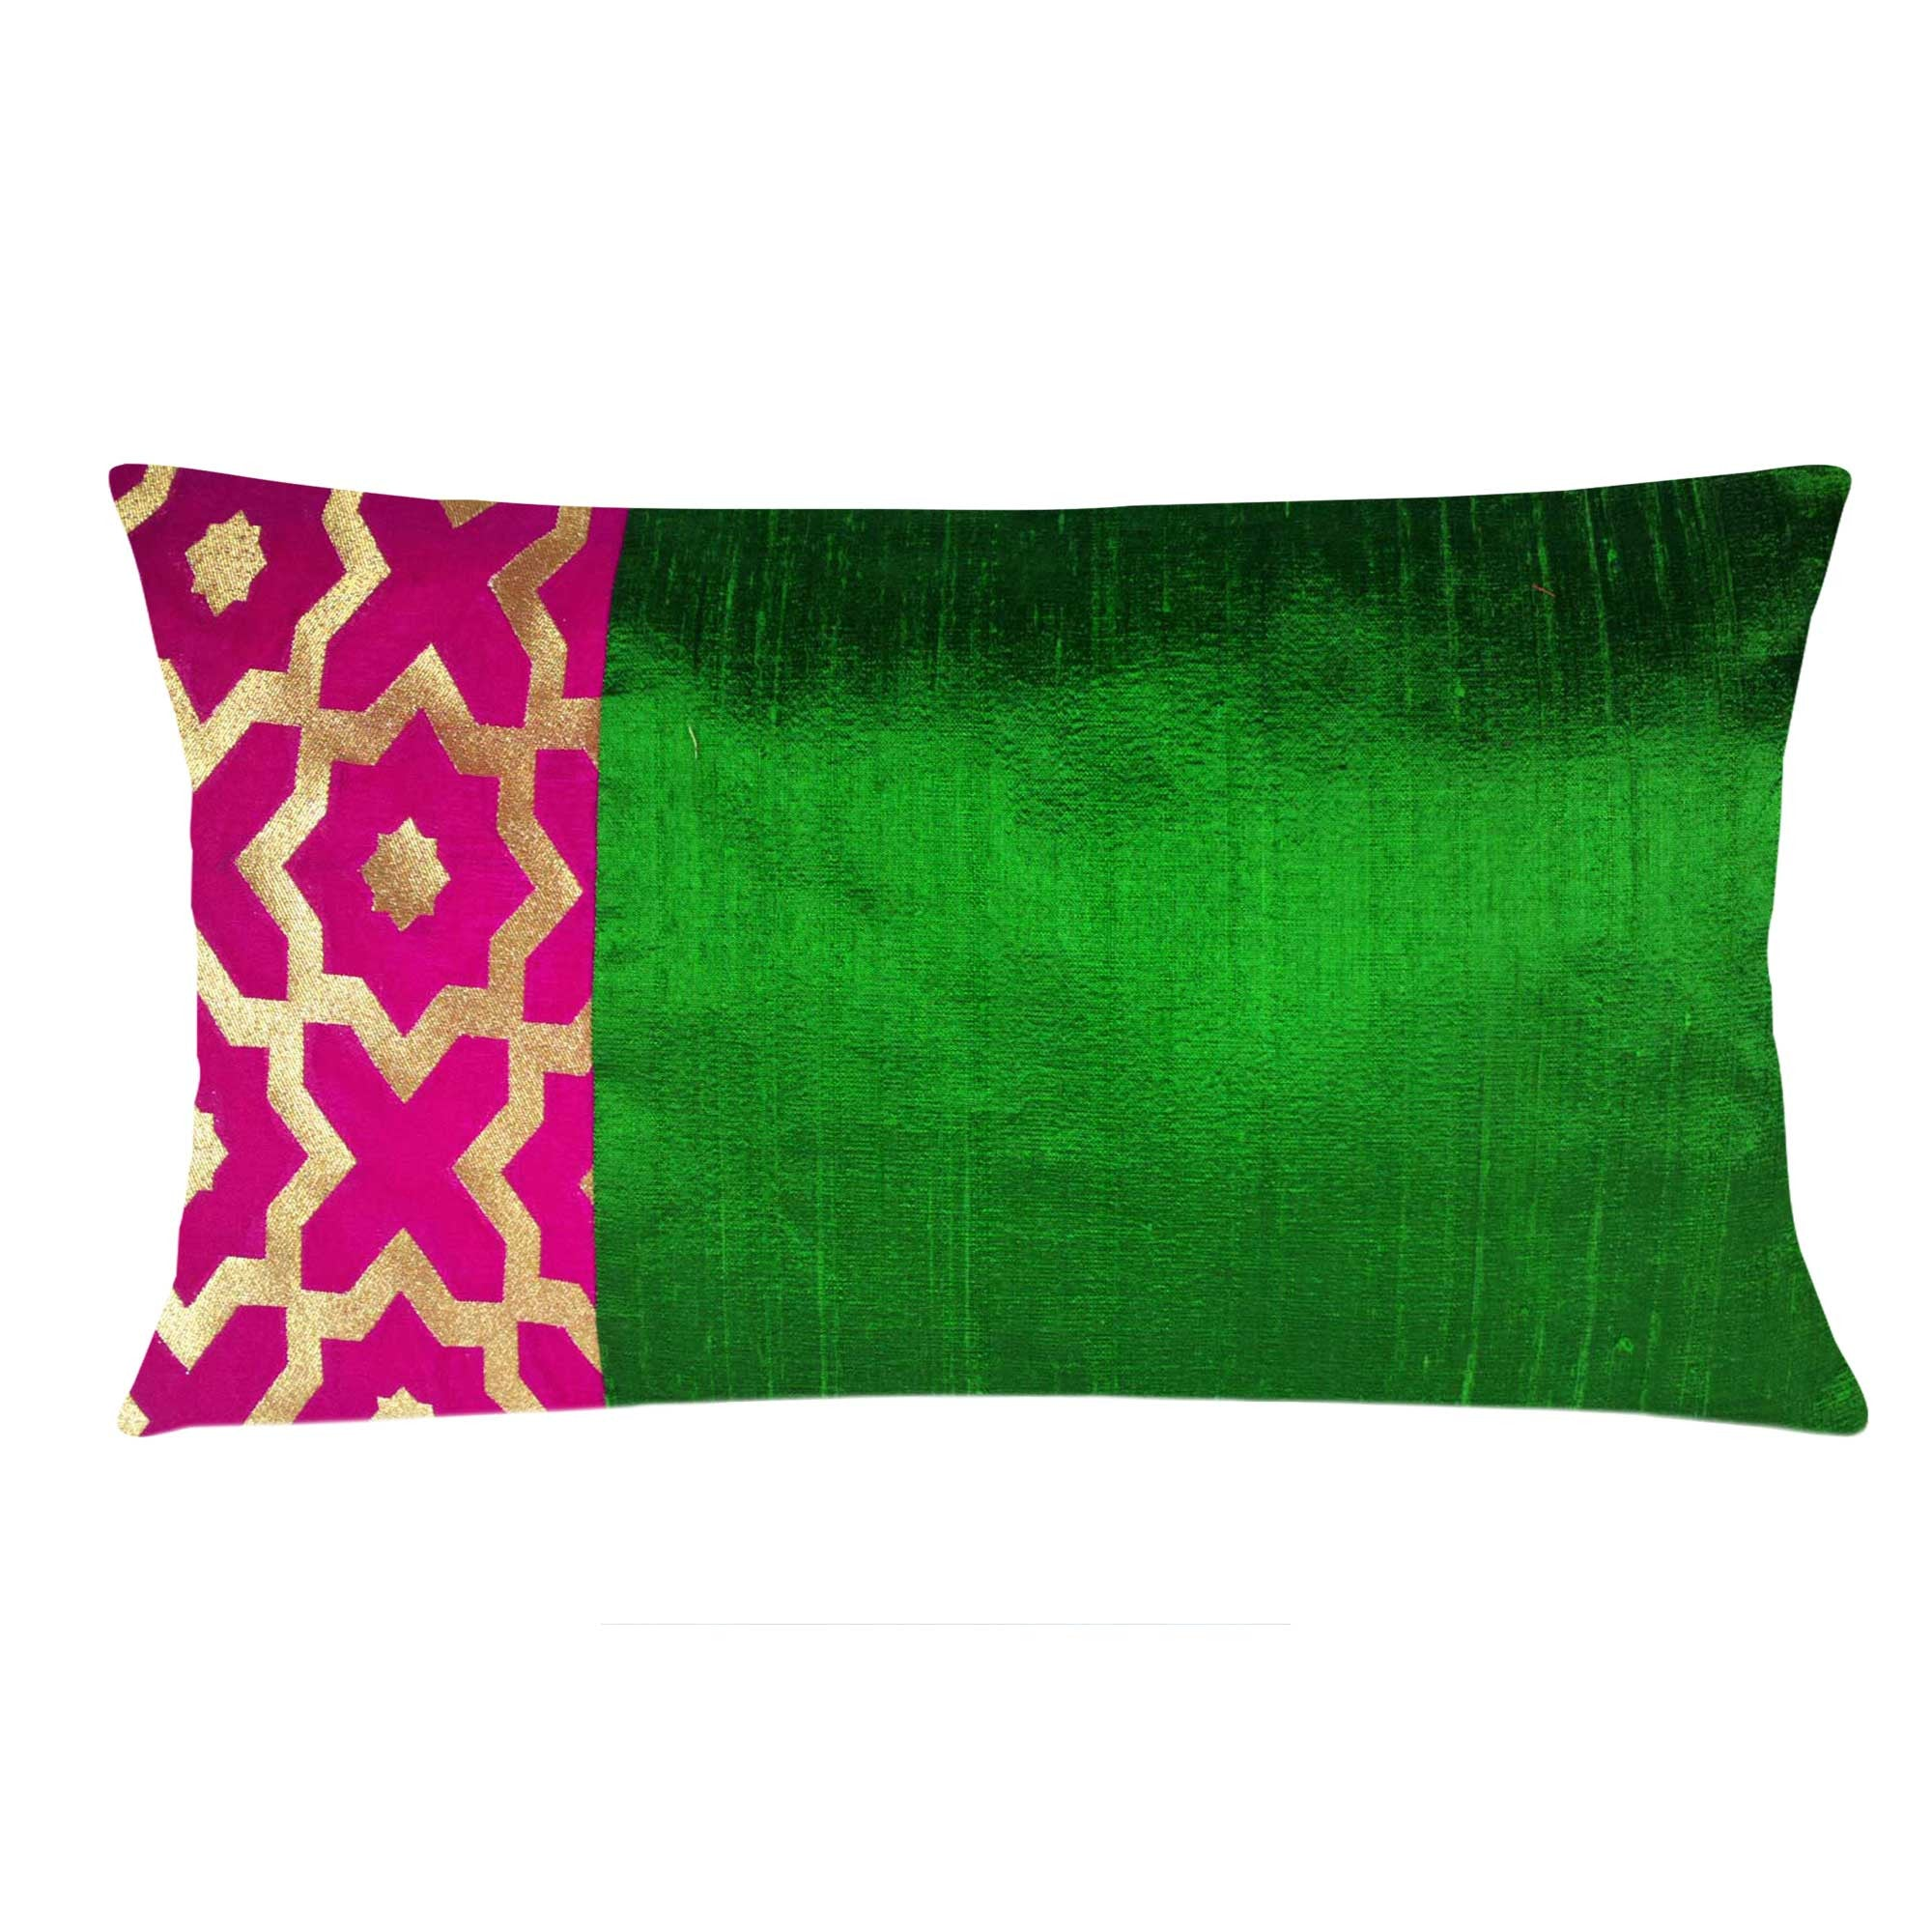 Hot Pink and Gold Moroccan Raw Silk Lumbar Pillow Cover – DesiCrafts